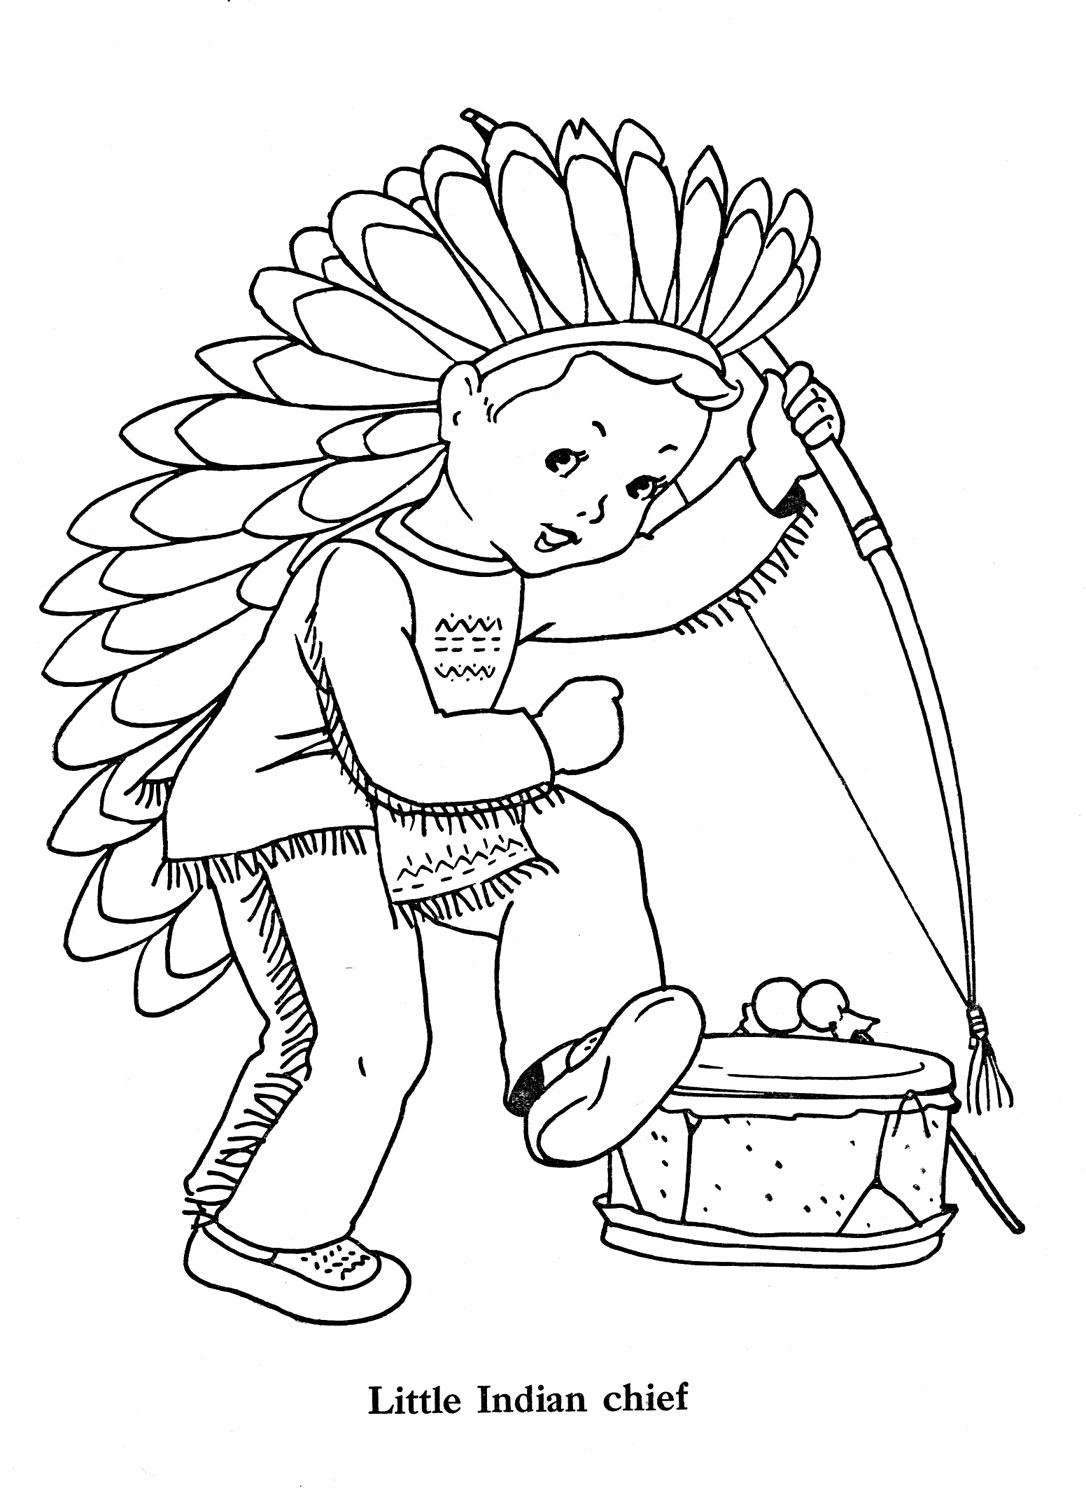 coloring pages indian chief - photo#21